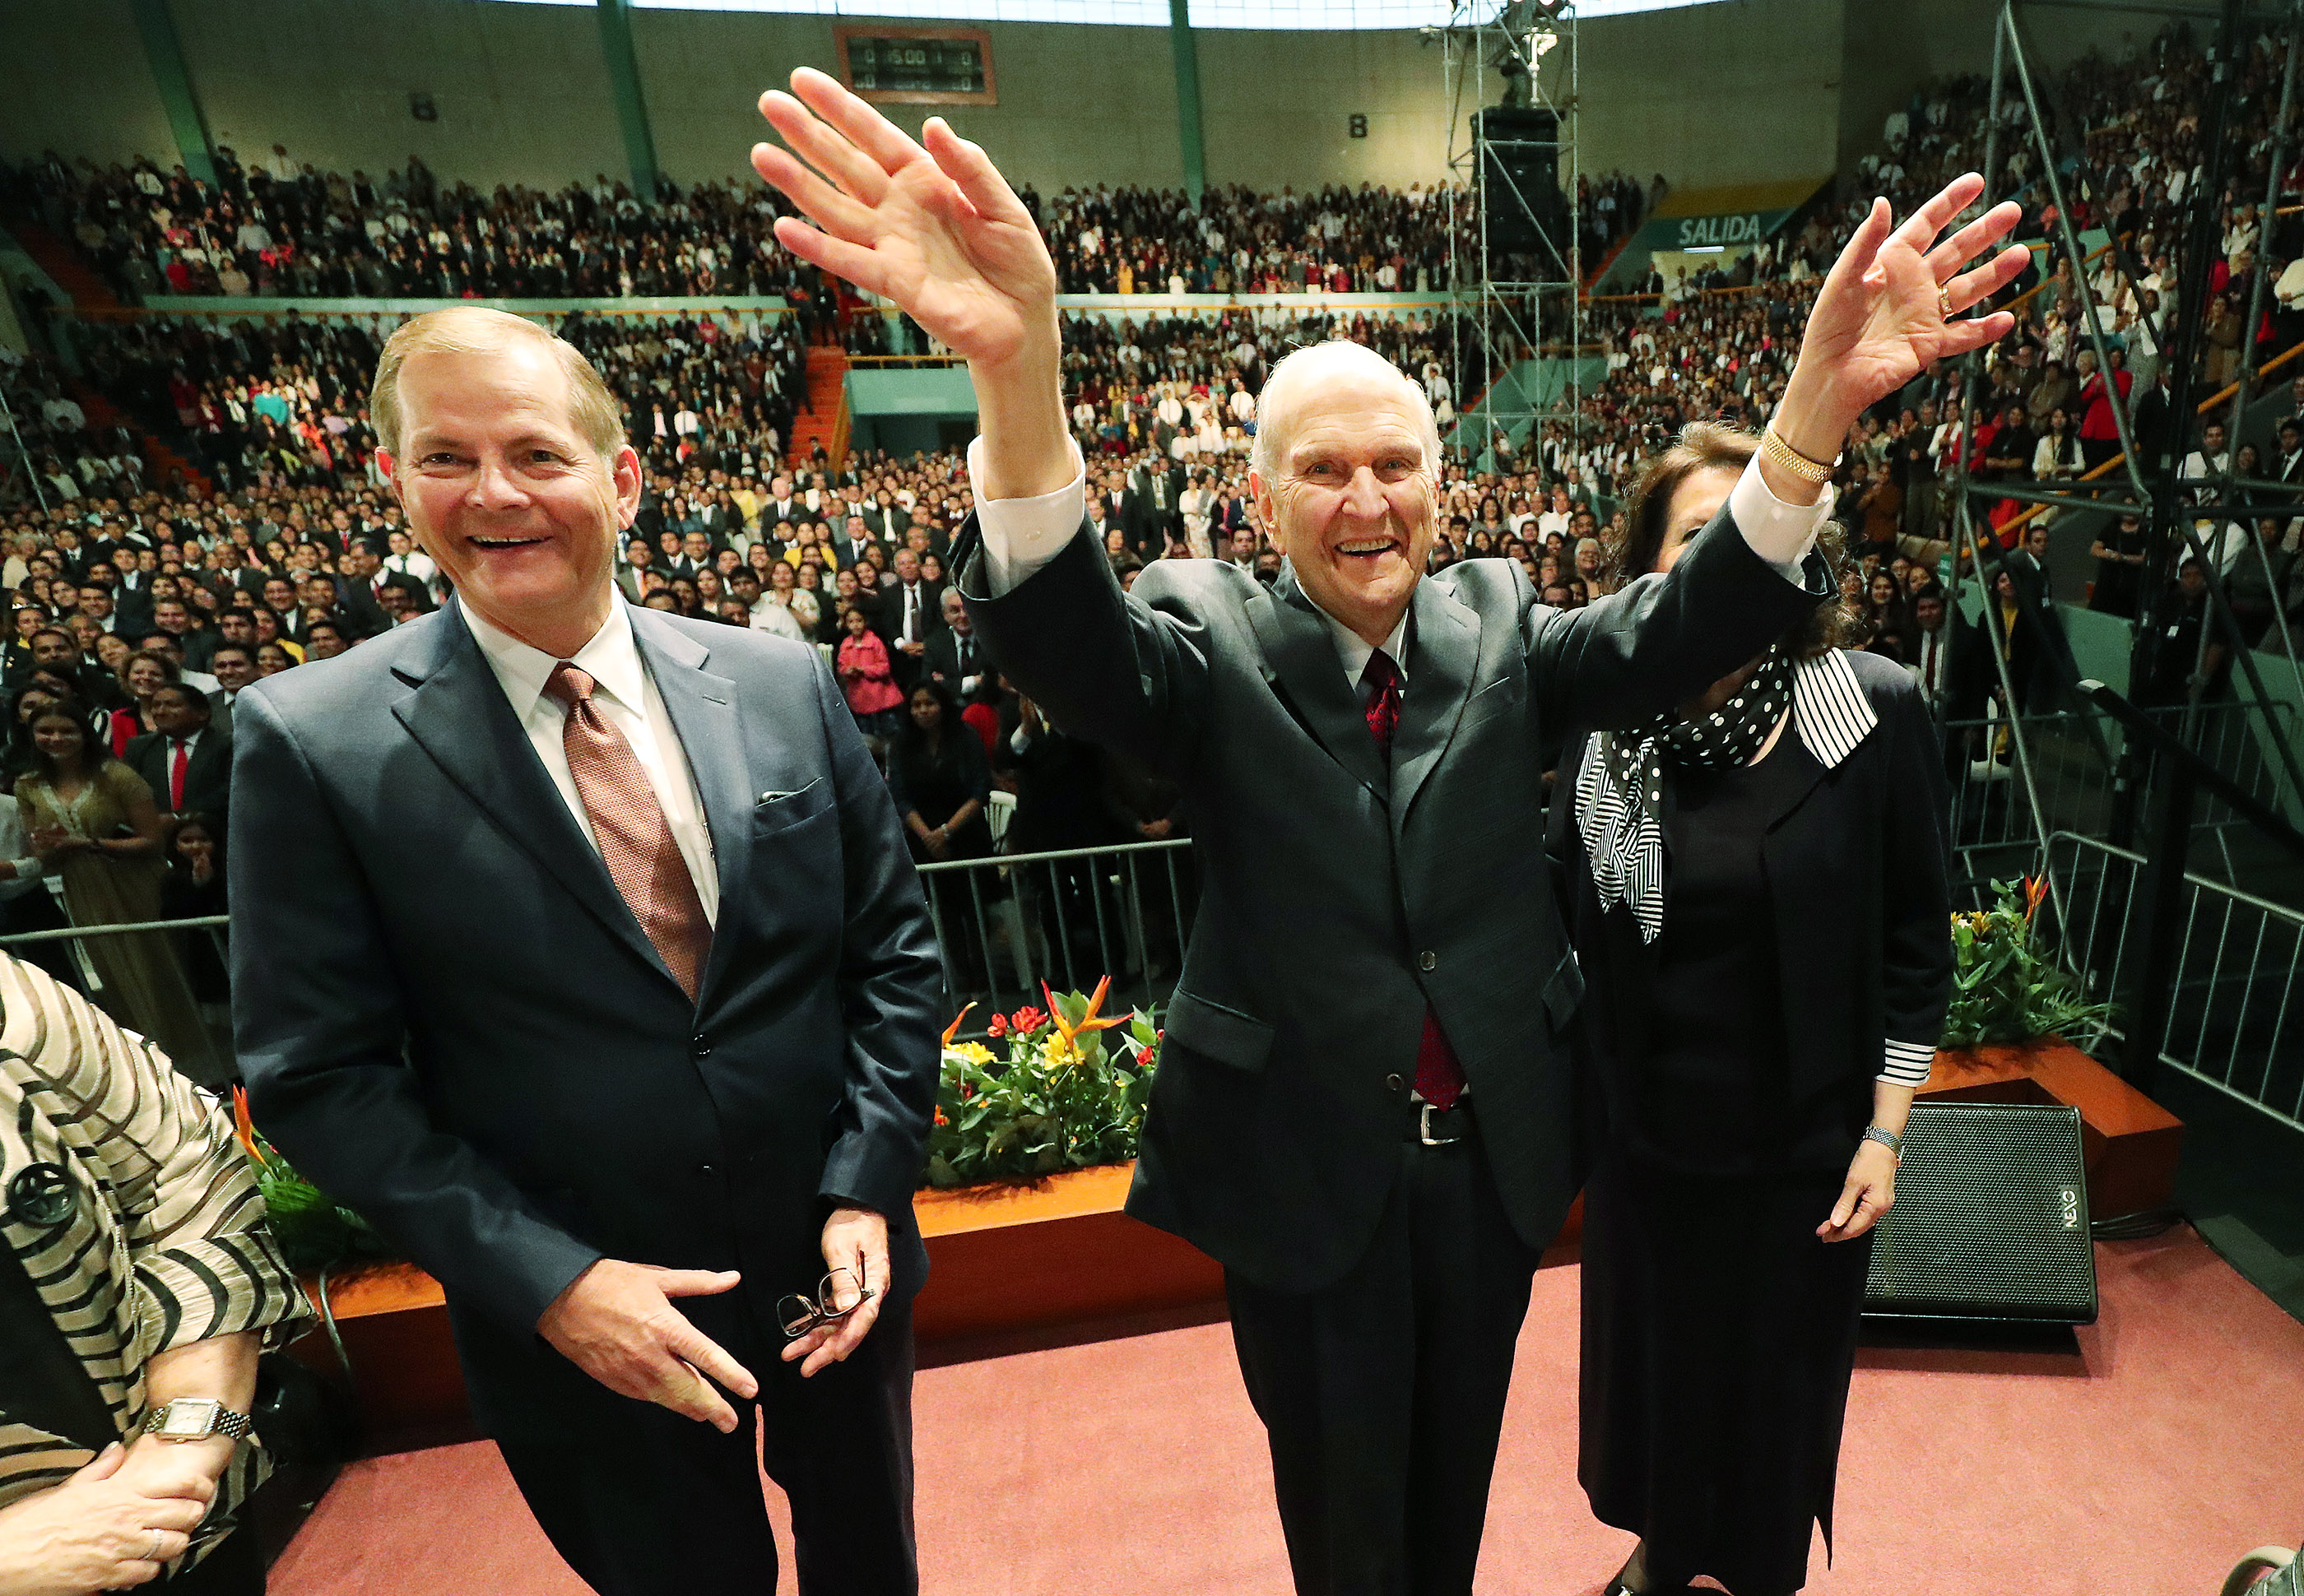 President Russell M. Nelson of The Church of Jesus Christ of Latter-day Saints and Elder Gary E. Stevenson, of the Quorum of the Twelve Apostles, wave to attendees at a devotional in Lima, Peru, on Oct. 20, 2018.